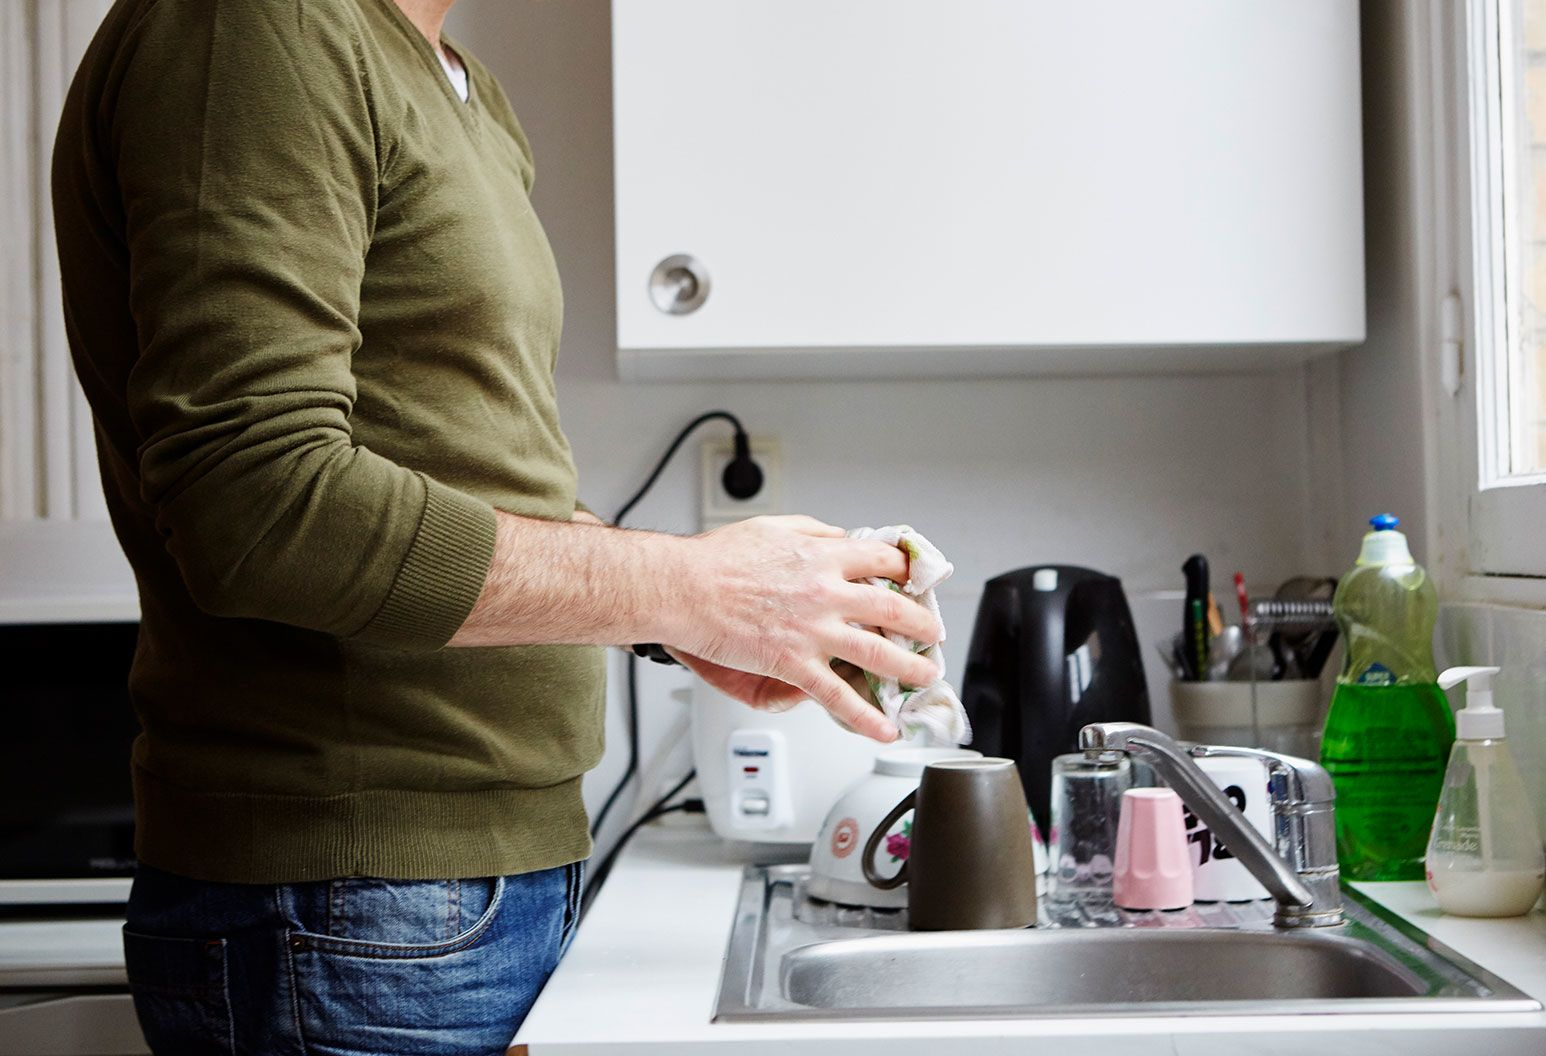 A man in a olive green sweater and blue jeans stands by the sink of a kitchen and cleans holds a wet rag over it.